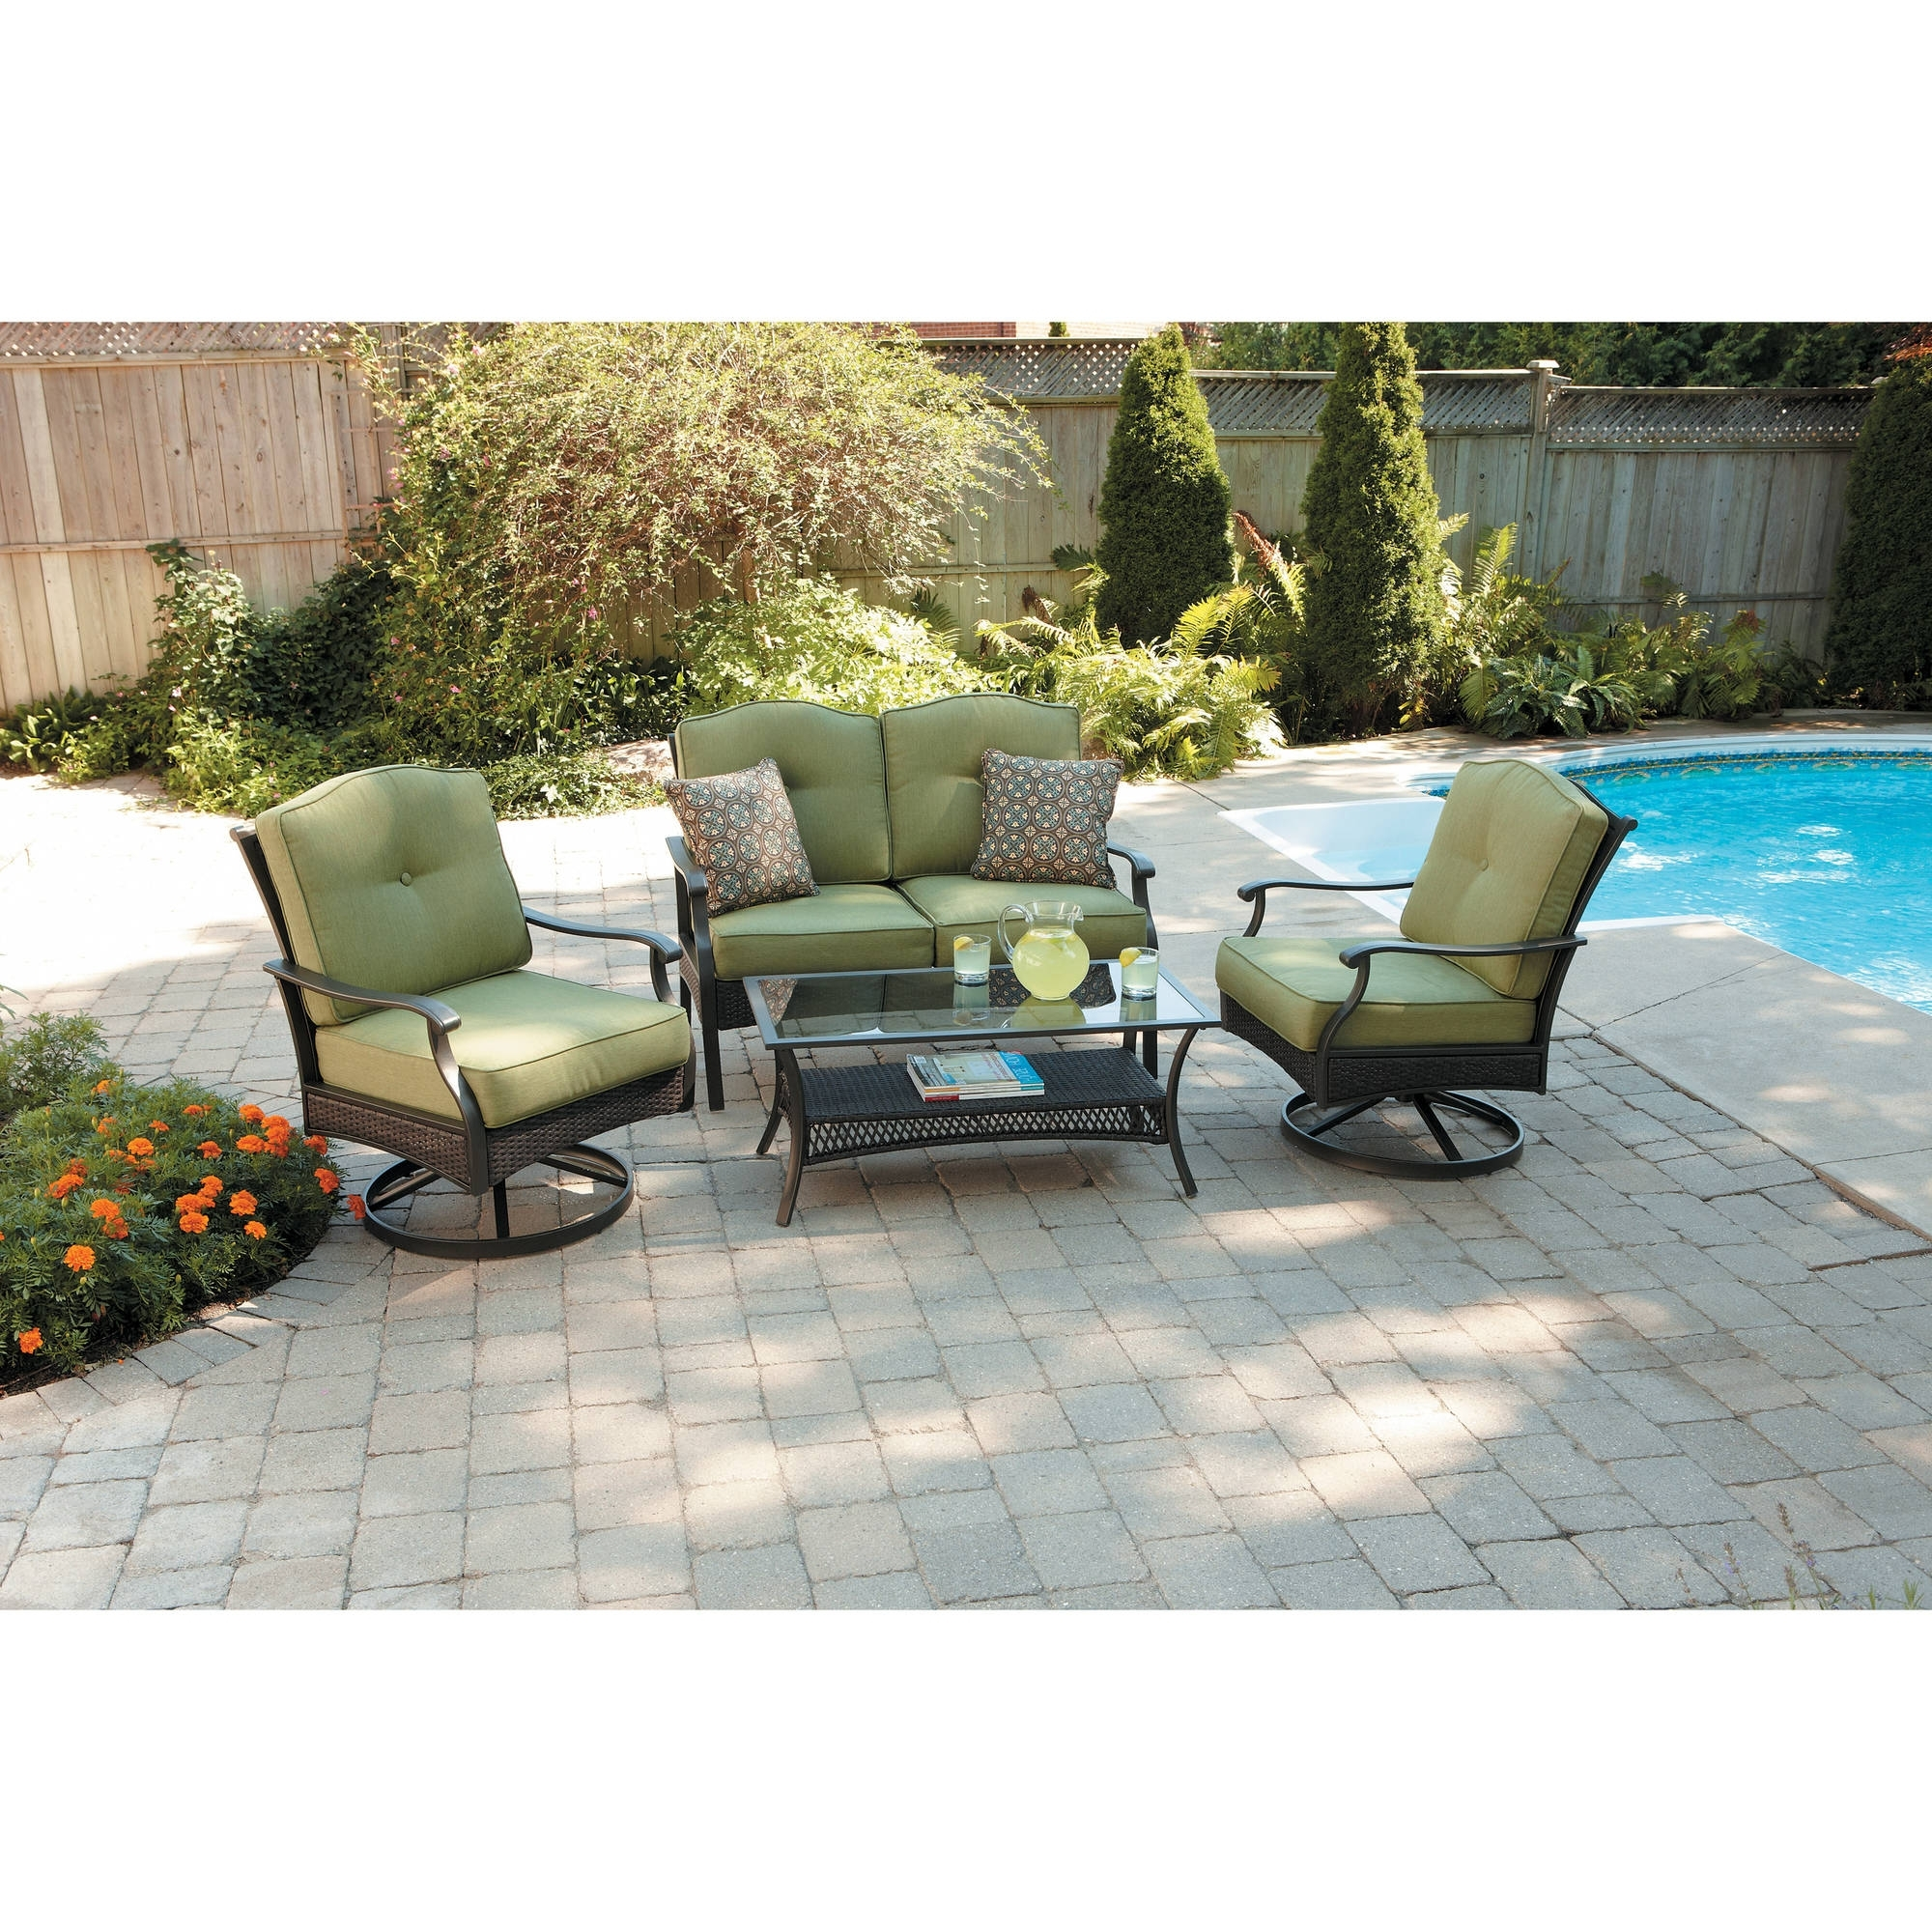 Famous Patio Conversation Sets At Walmart Intended For Better Homes And Gardens Providence 4 Piece Patio Conversation Set (View 6 of 15)